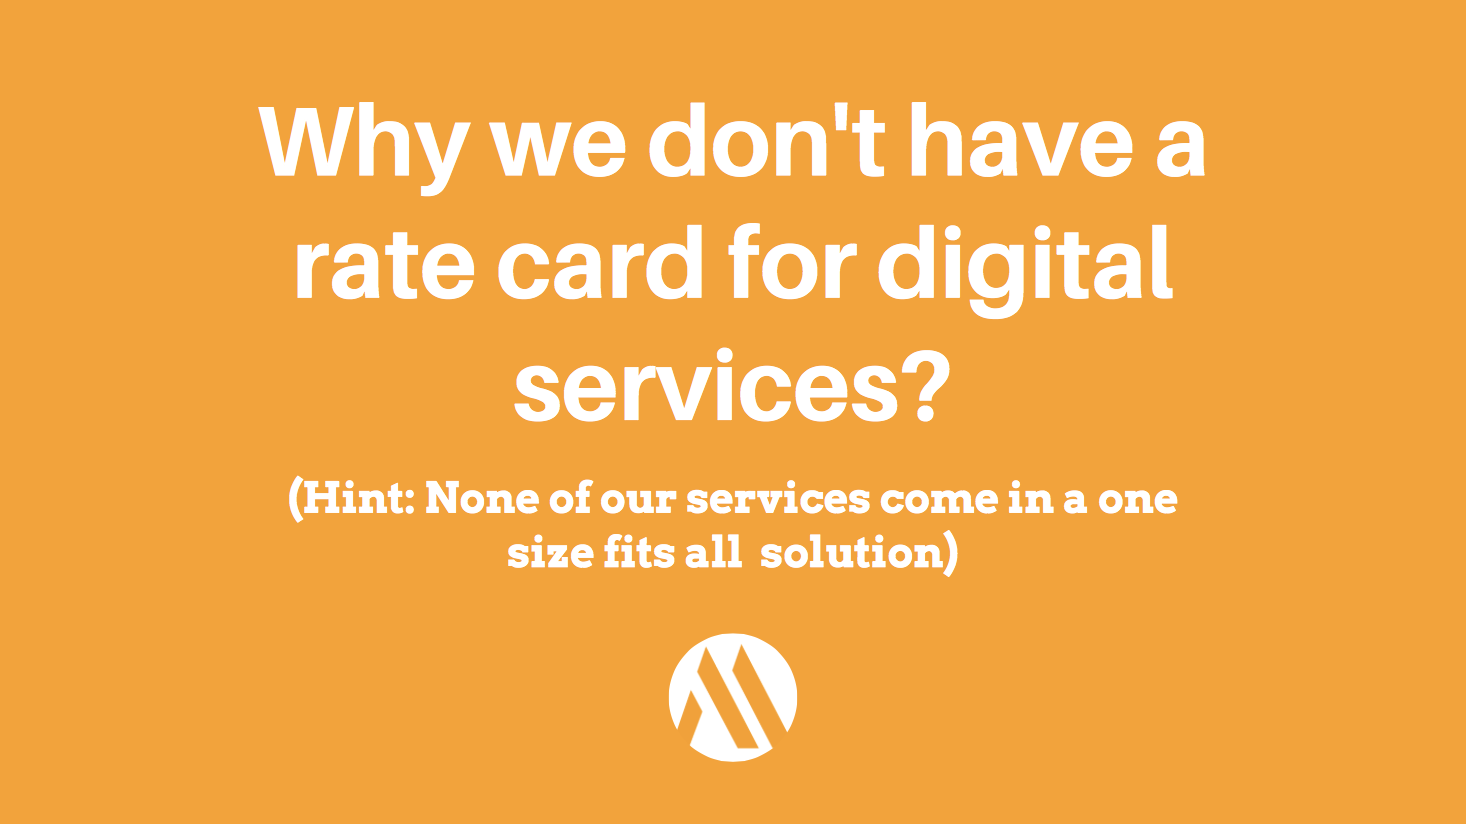 Why we don't have a rate card for digital services